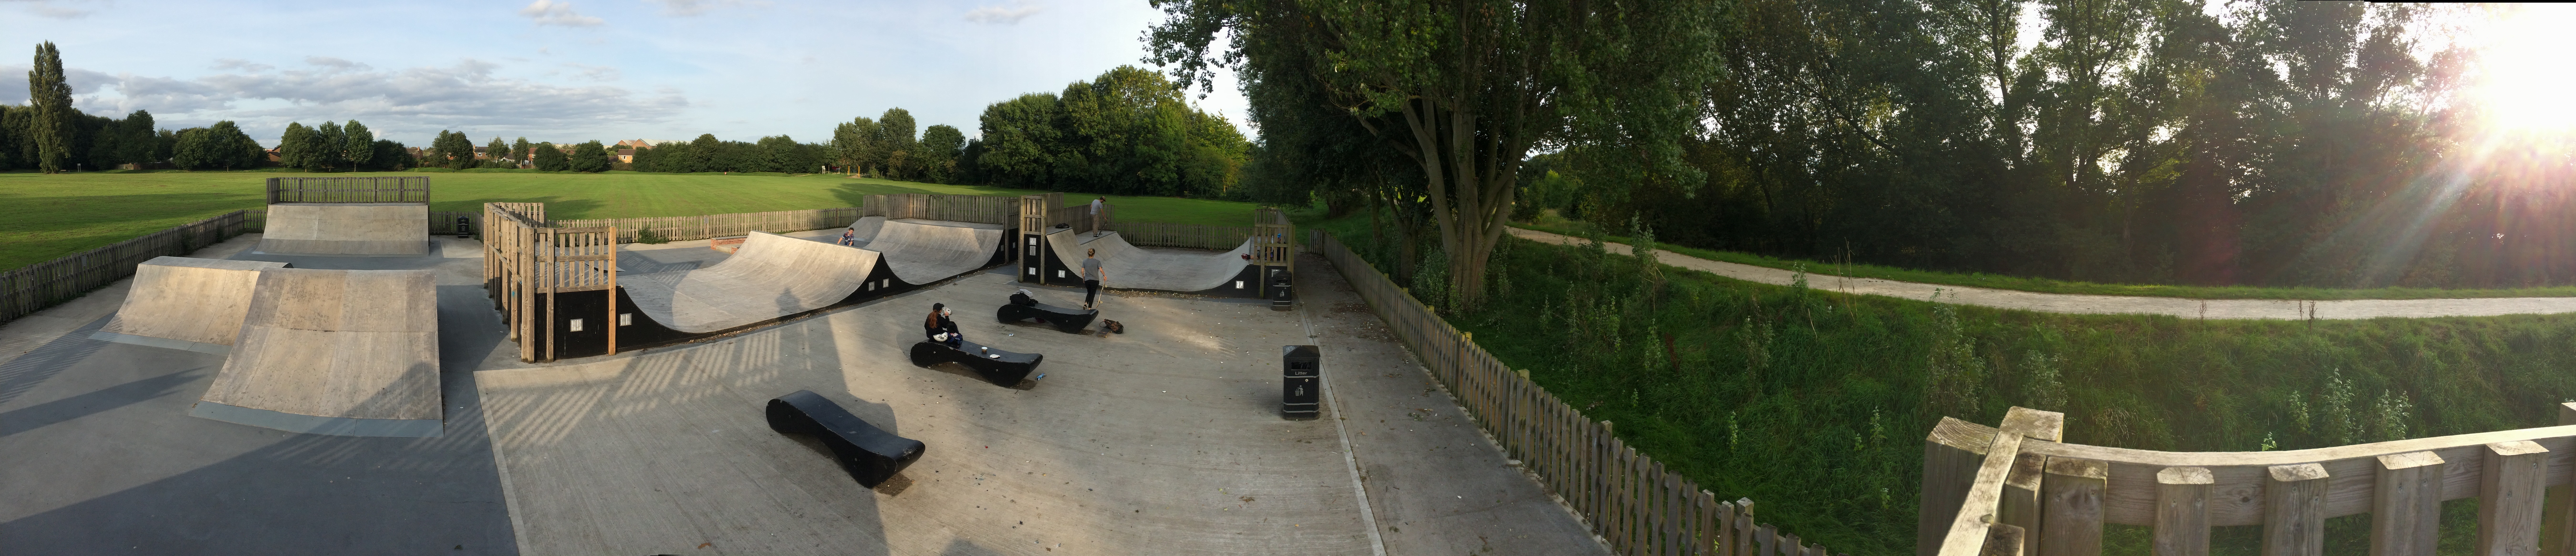 The Josh Dale memorial skatepark Nottingham.